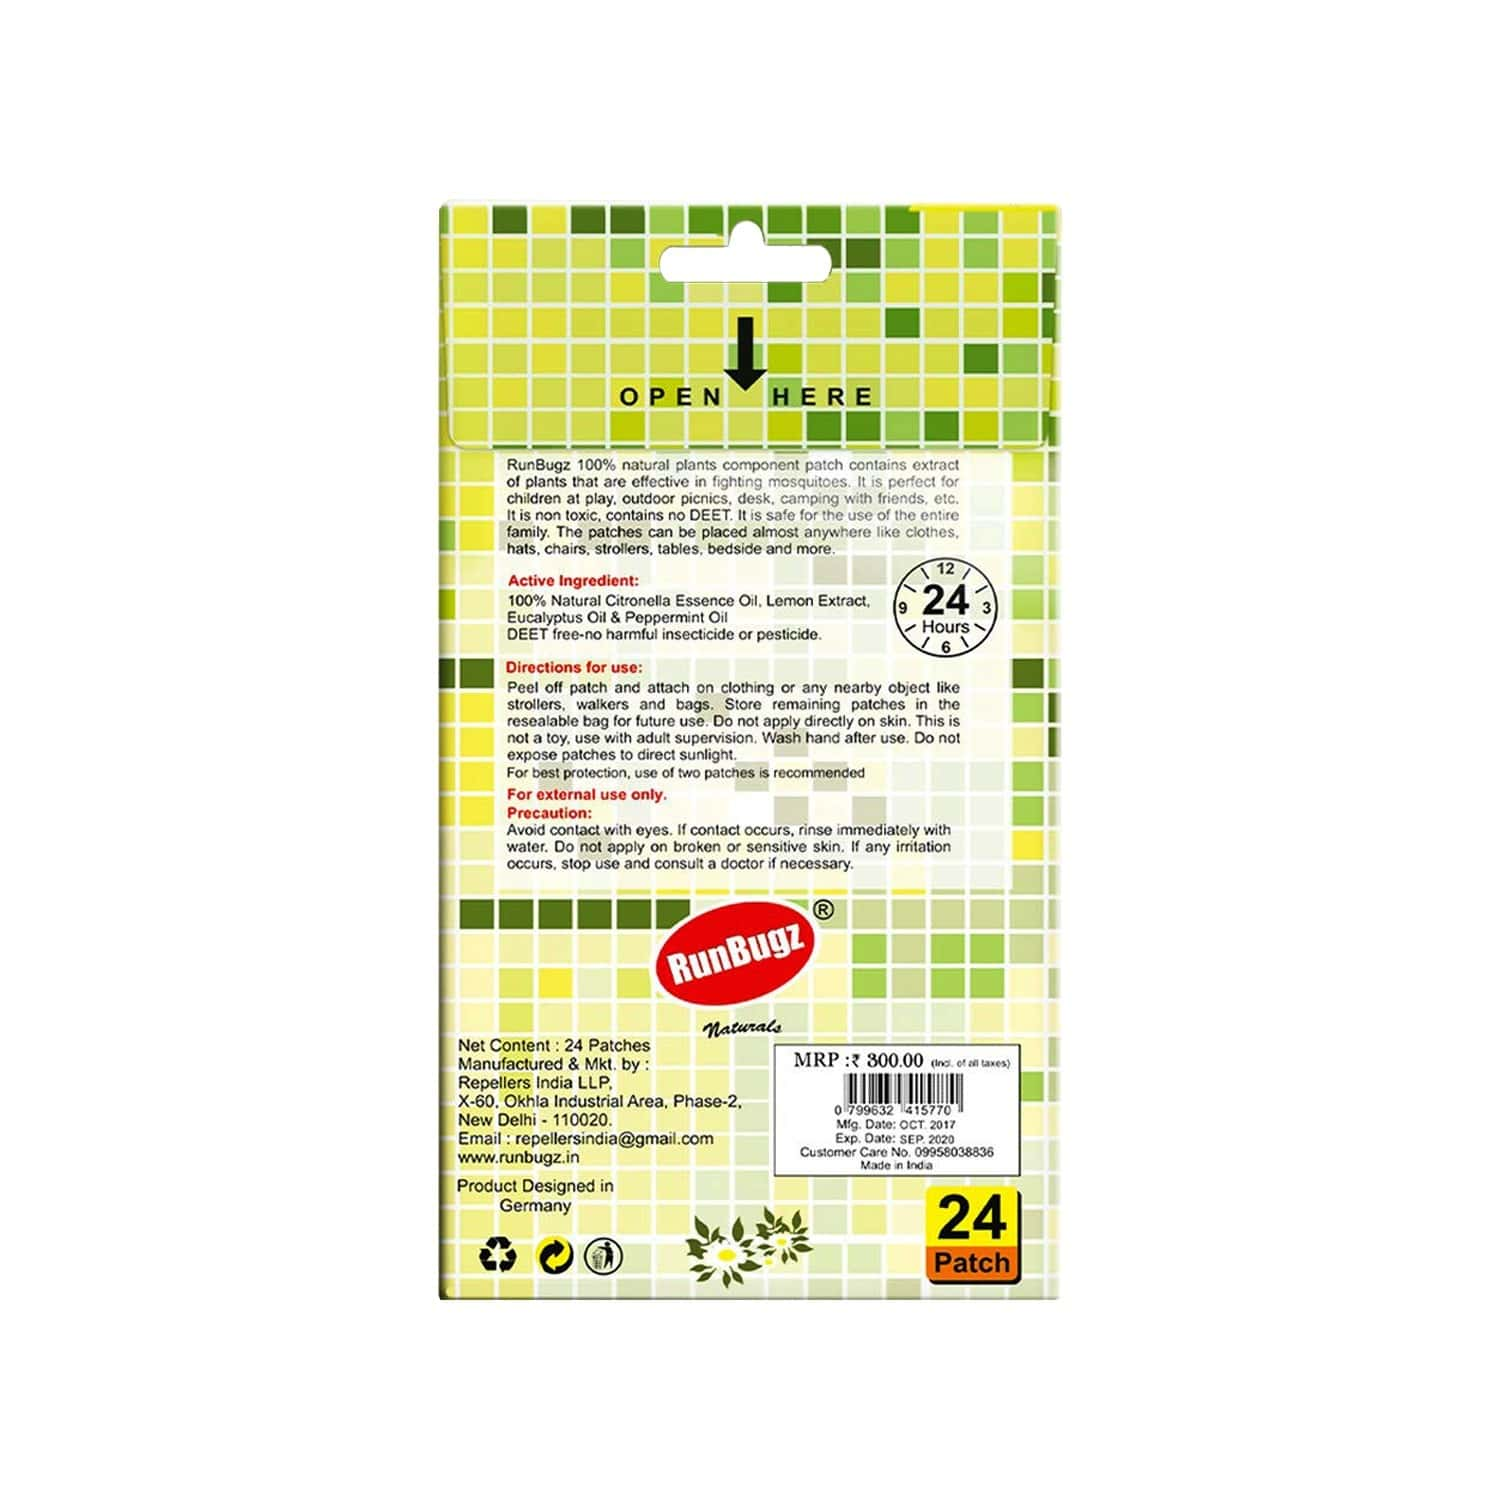 Mosquito Repellent Patches, Anti Mosquito Patch, 24 Patches - Green